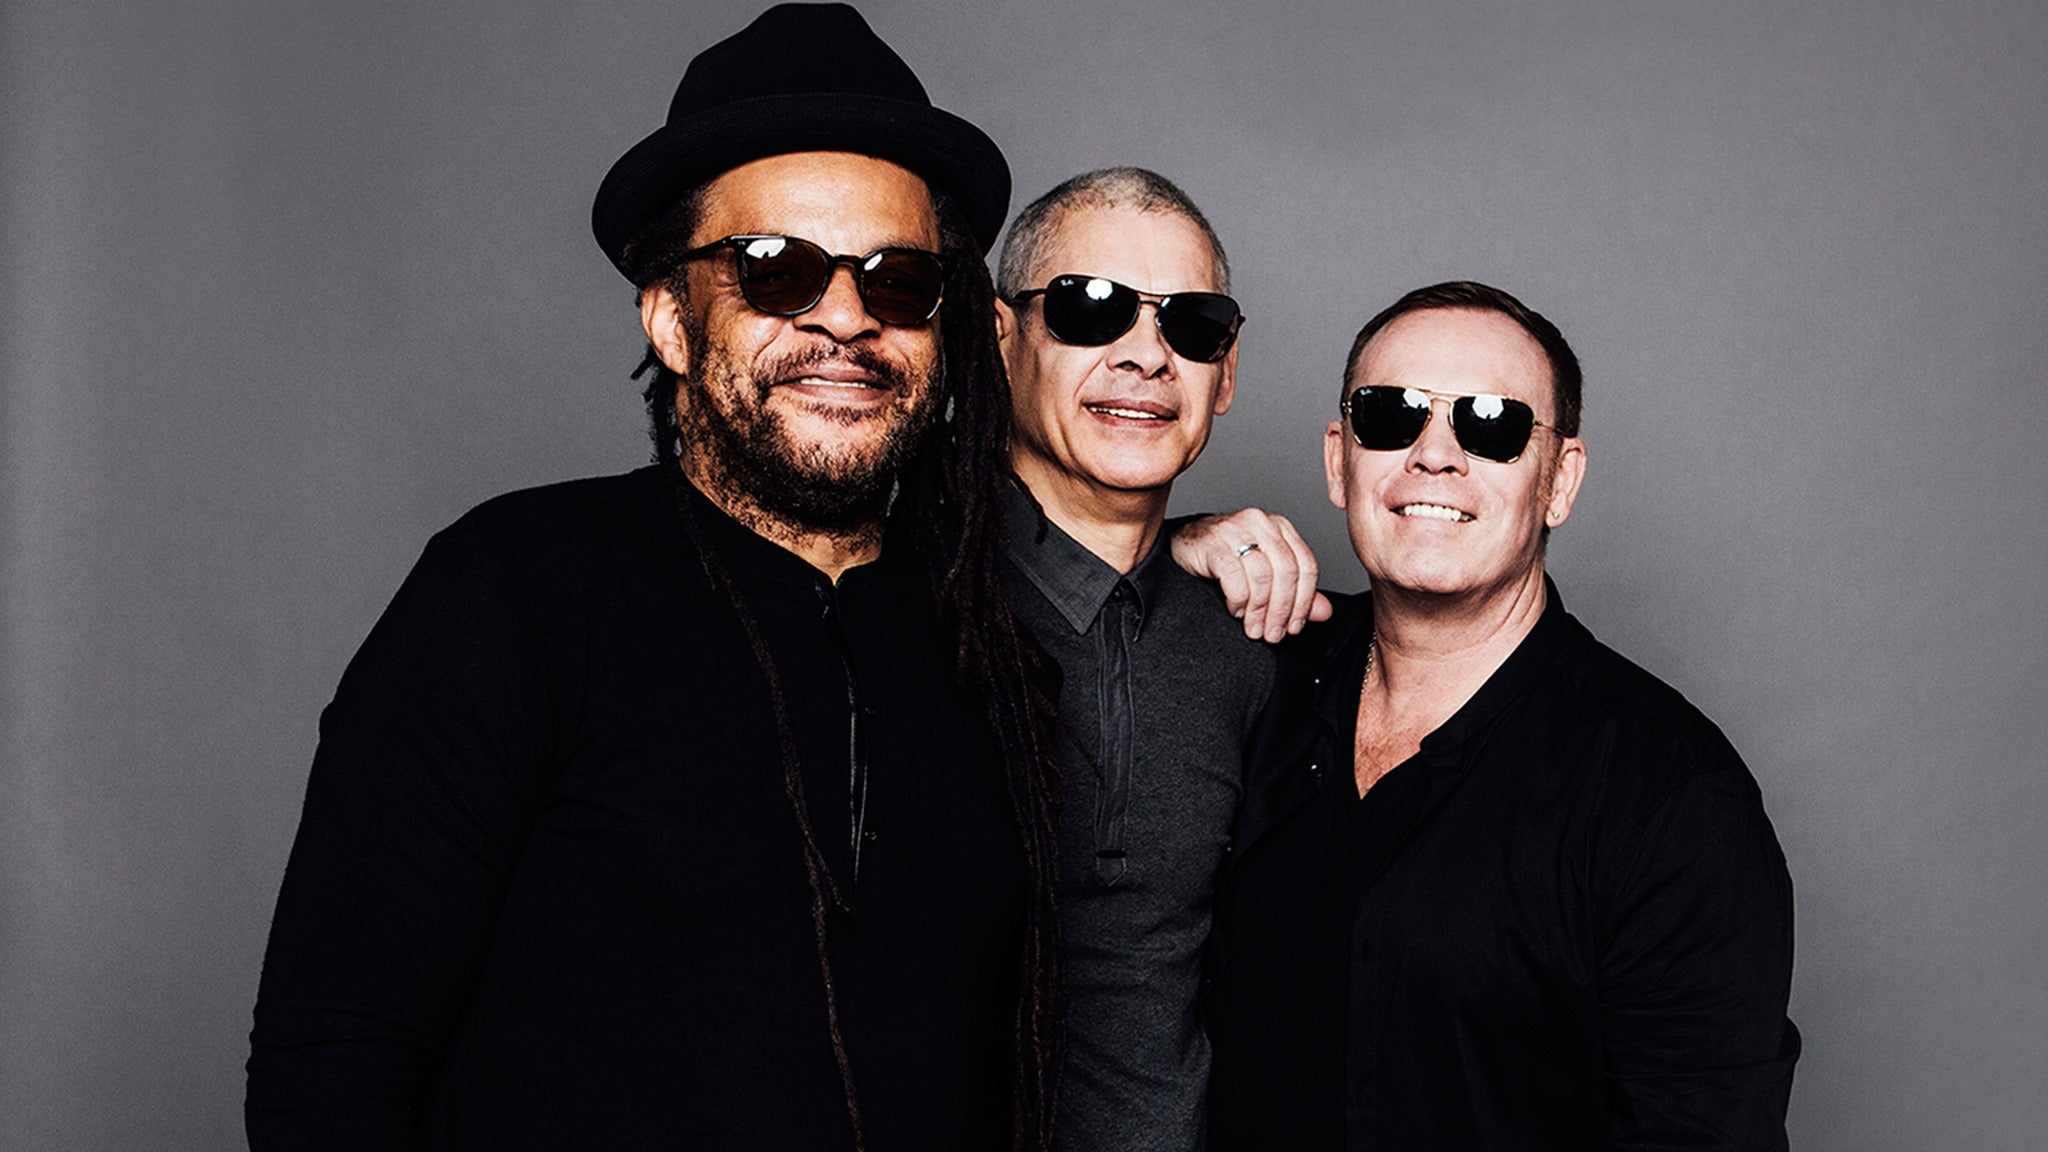 UB40 featuring Ali, Astro and Mickey at 5th Street Beach